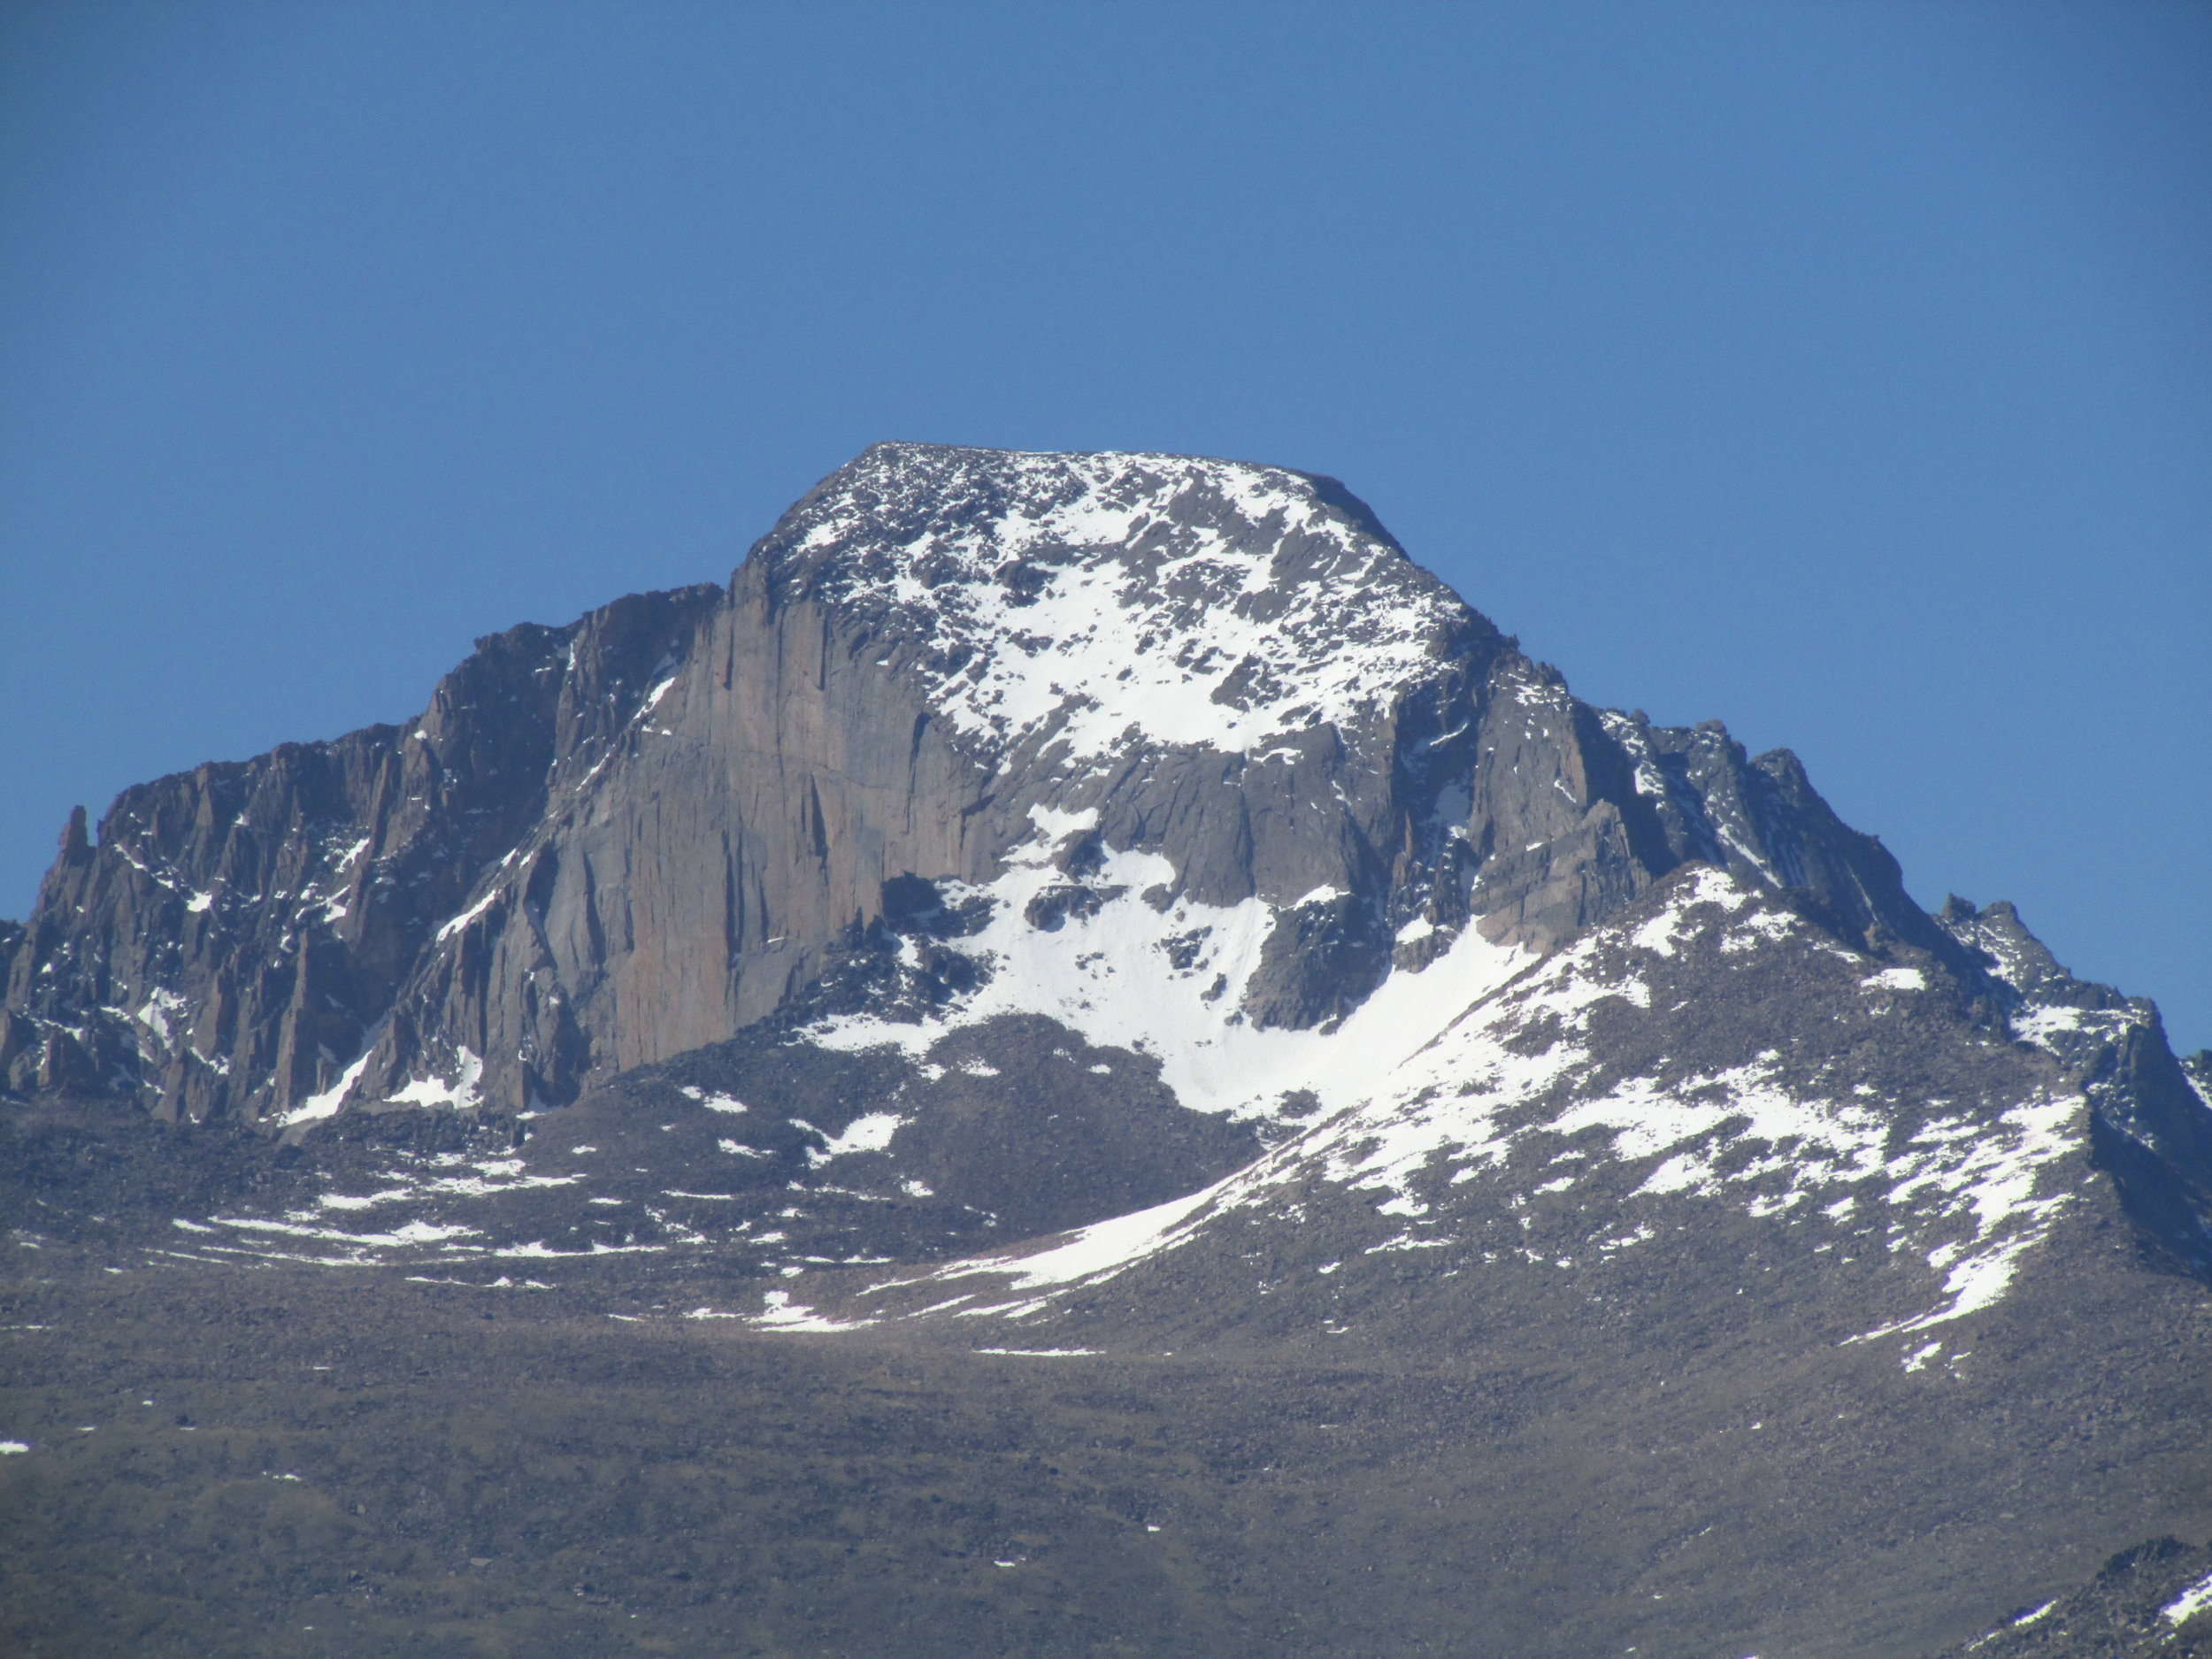 The original shot of Long's Peak from 2014, Canon SX-500IS, 91mm, ISO100, 1/400, f/8